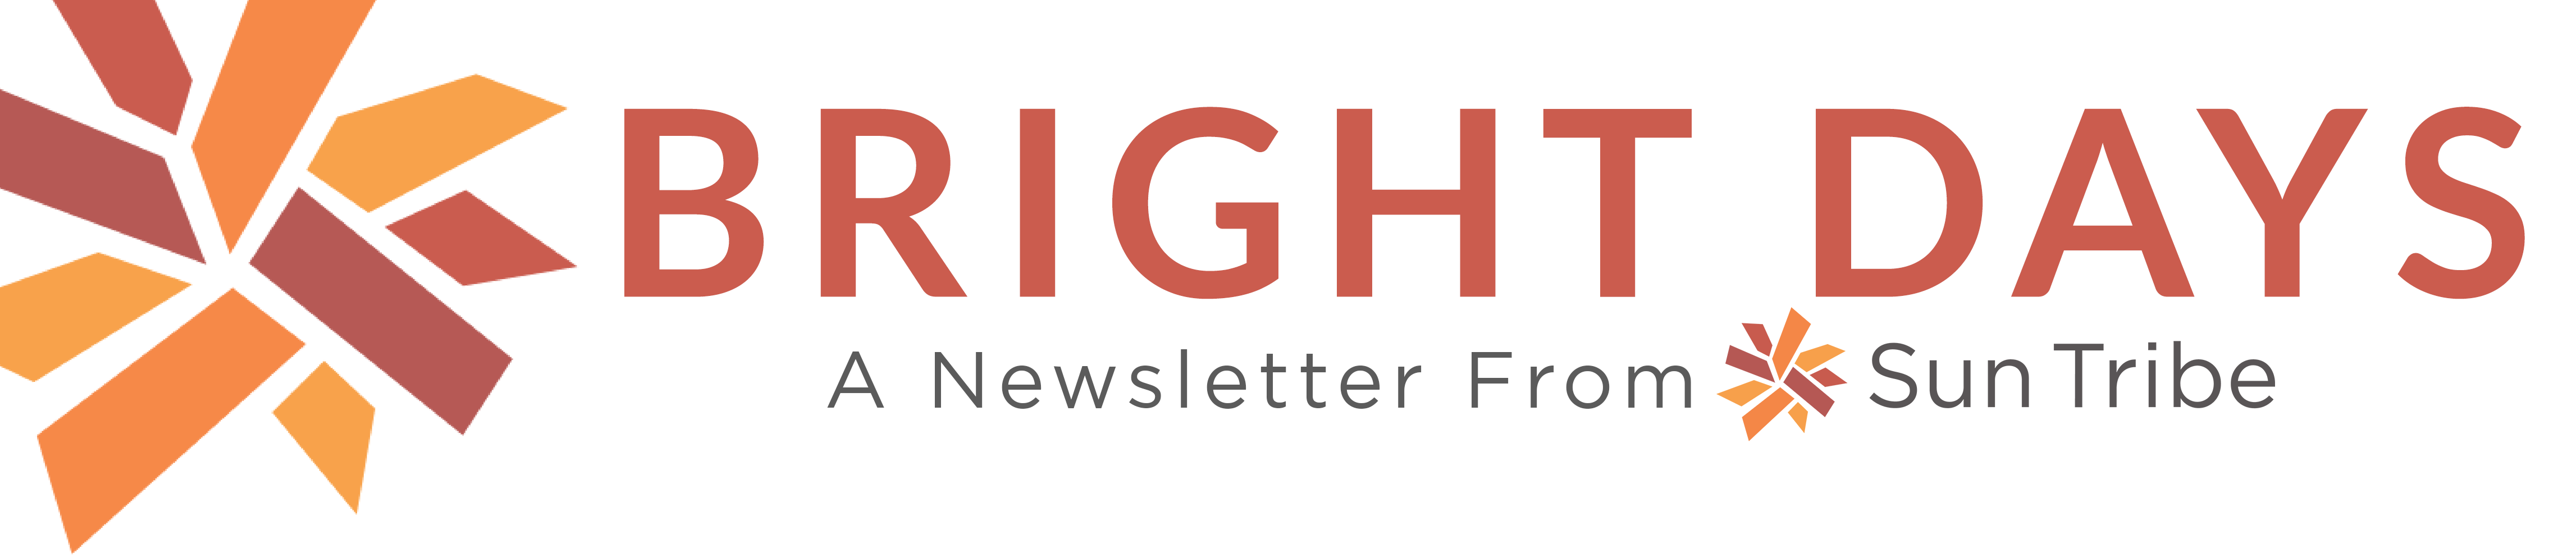 Bright Days - a solar email newsletter from Sun Tribe